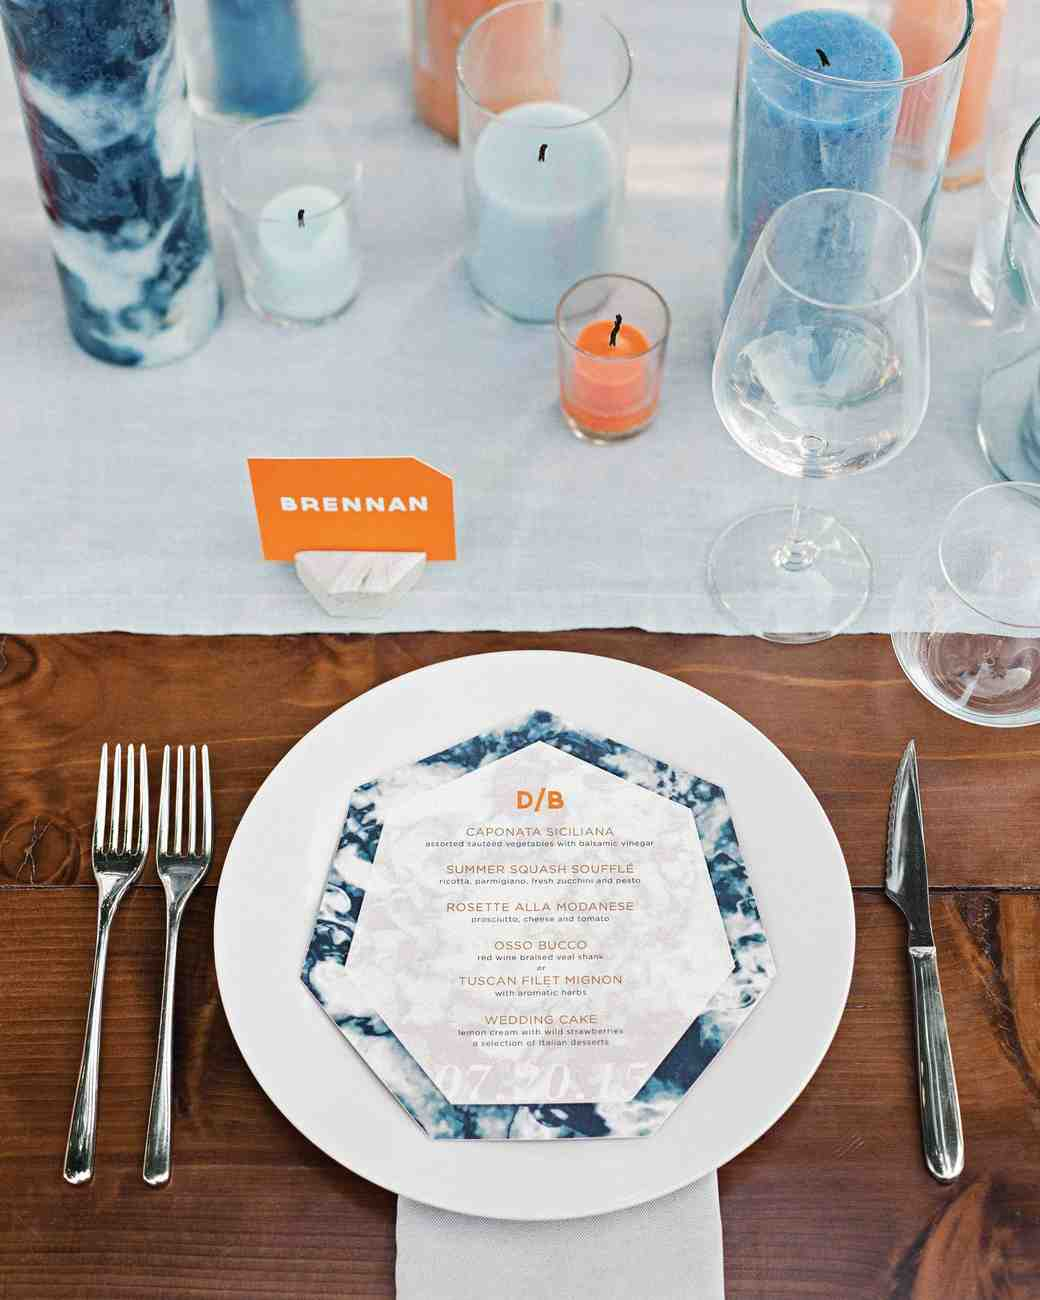 dennis-bryan-wedding-italy-table-setting-menu-orange-blue-candle-centerpiece-004-0531-s112633.jpg